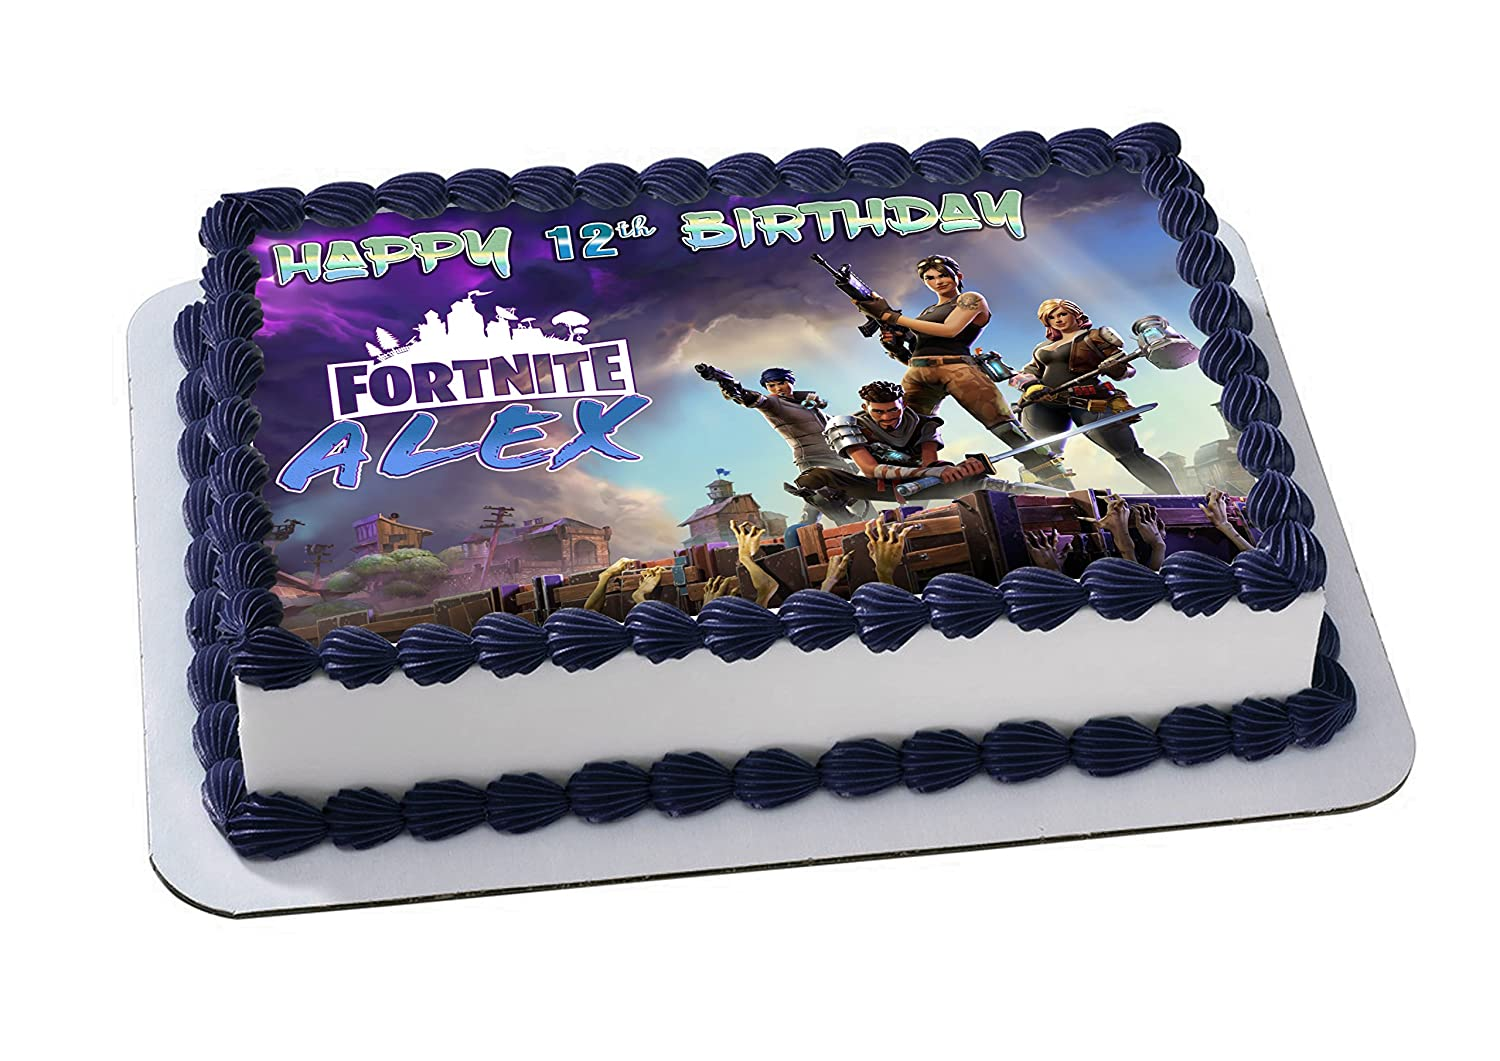 Battle Royale Edible Image Cake Topper Personalized Birthday 1 4 Sheet Decoration Custom Party Sugar Frosting Transfer Fondant LXXE4